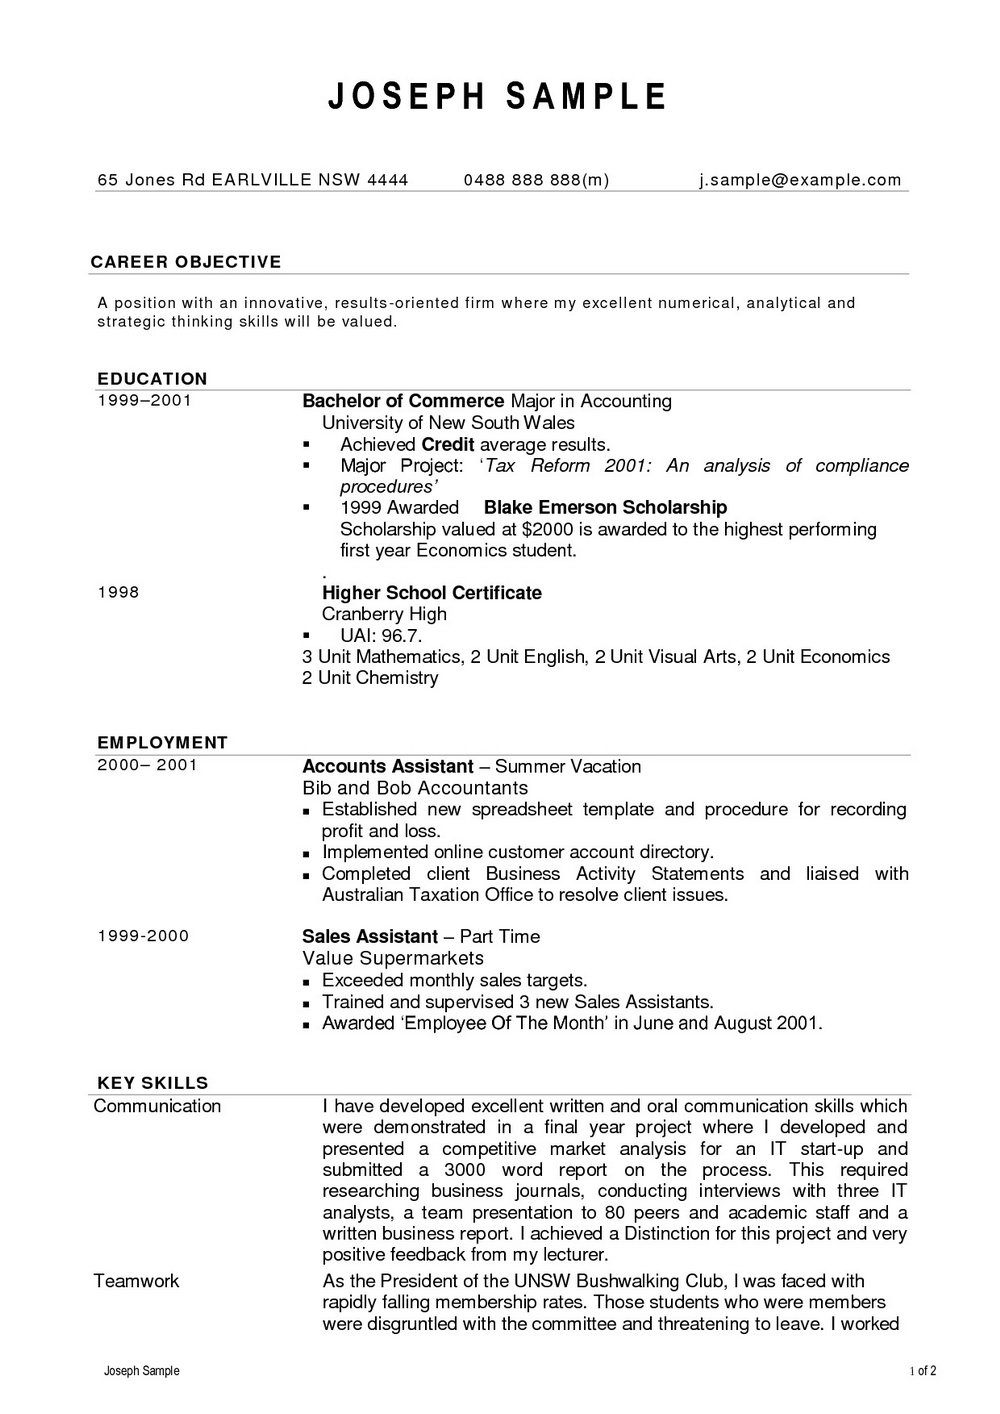 Free Resume Writing Services